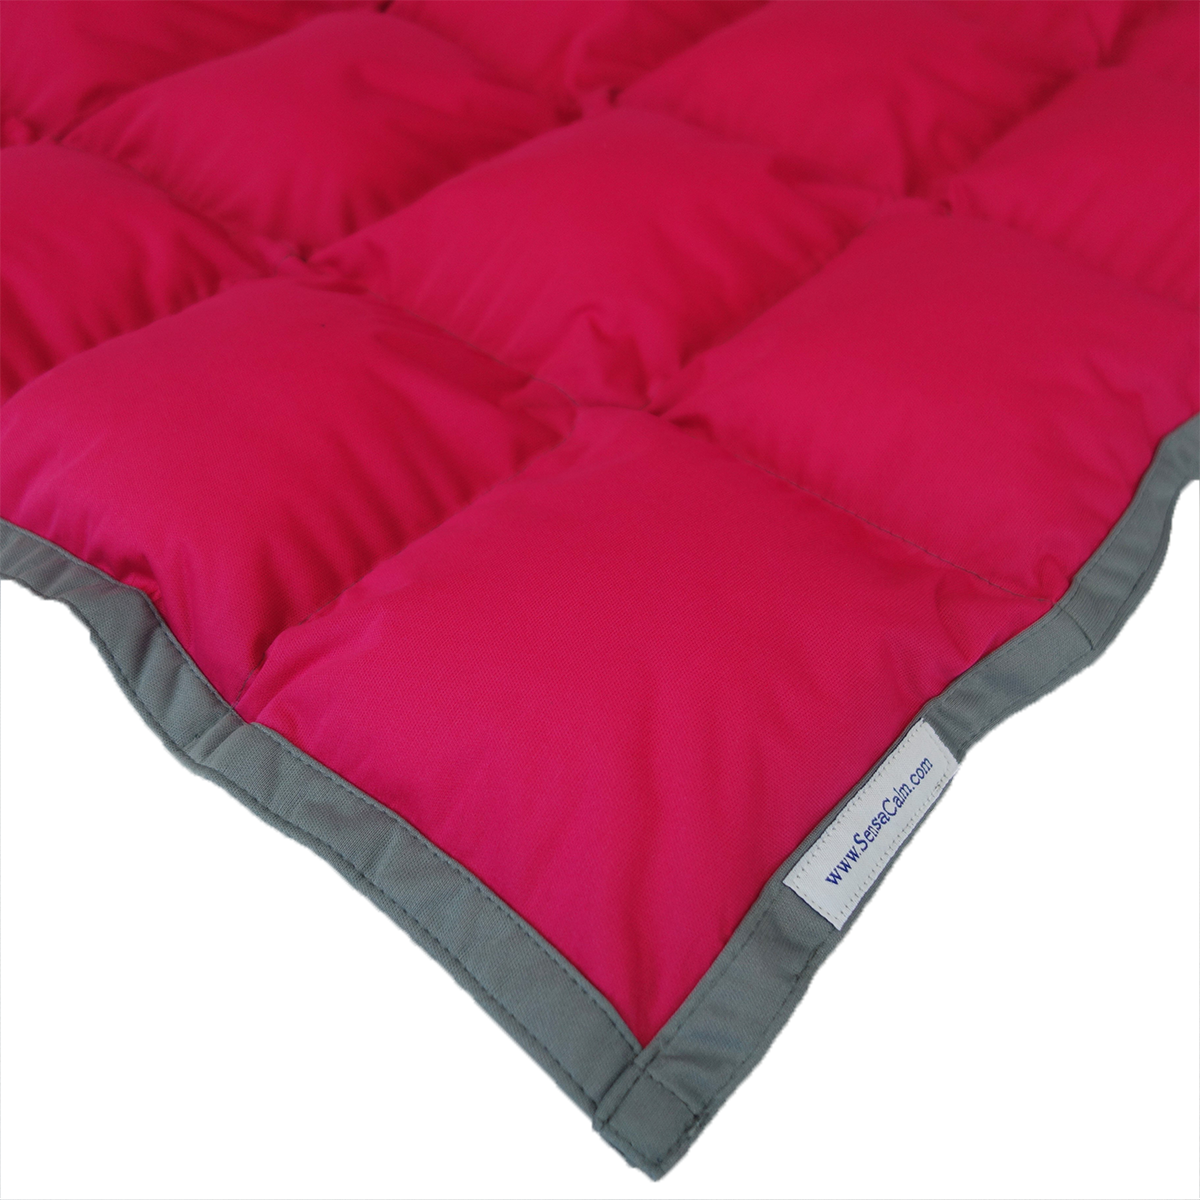 SensaCalm Raspberry w/ Slate Gray - Adult 12 lb Weighted Waterproof Blanket